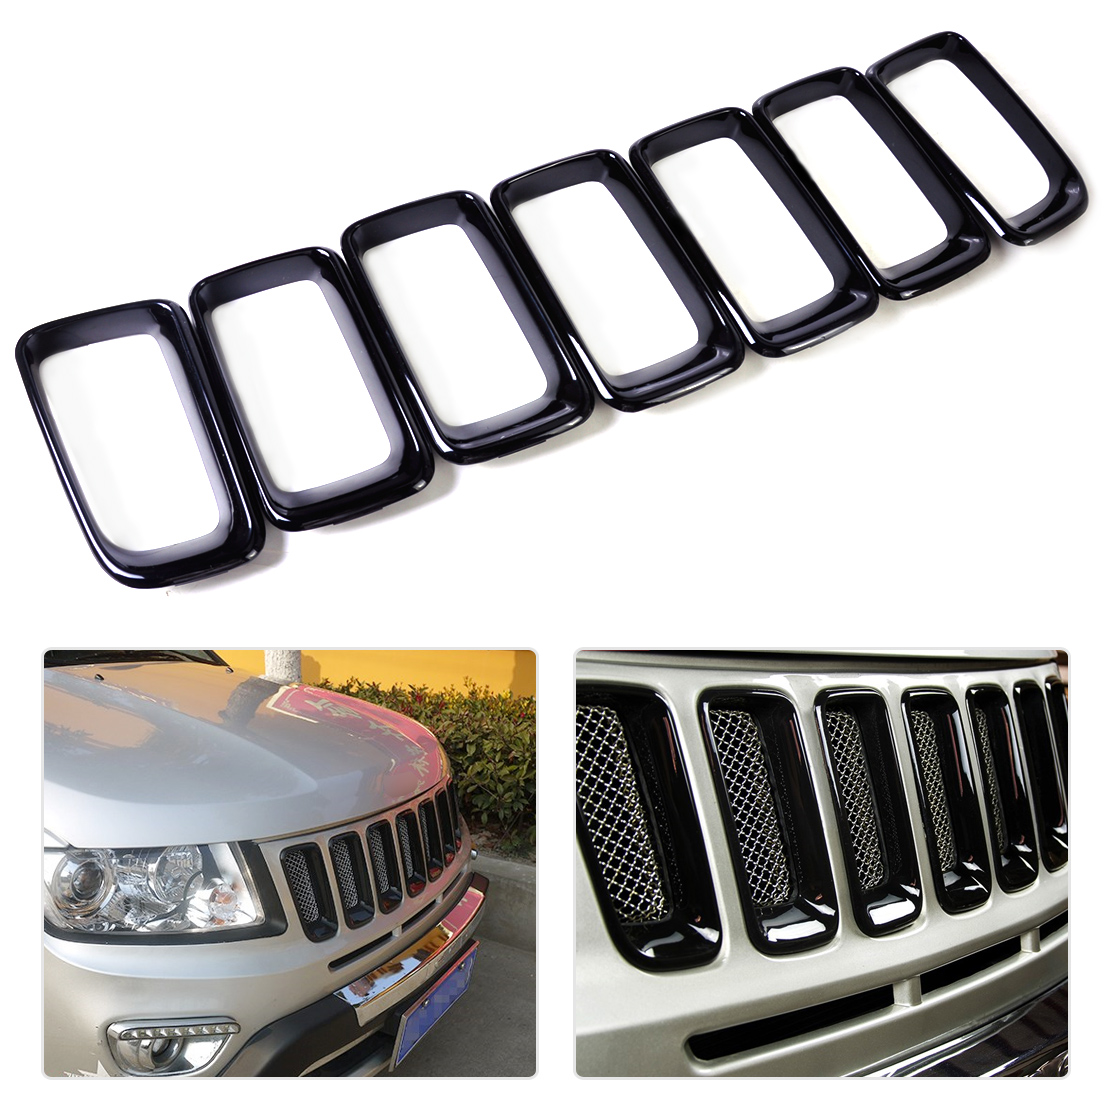 DWCX 7pcs/Lot Black Front Center Grille Vent Outlet Hole Cover Trim Net Frame Fit for Jeep Compass 2011 2012 2013 2014 2015 2016 stainless steel front bottom center grille grill mesh cover trims for nissan altima teana 2013 2014